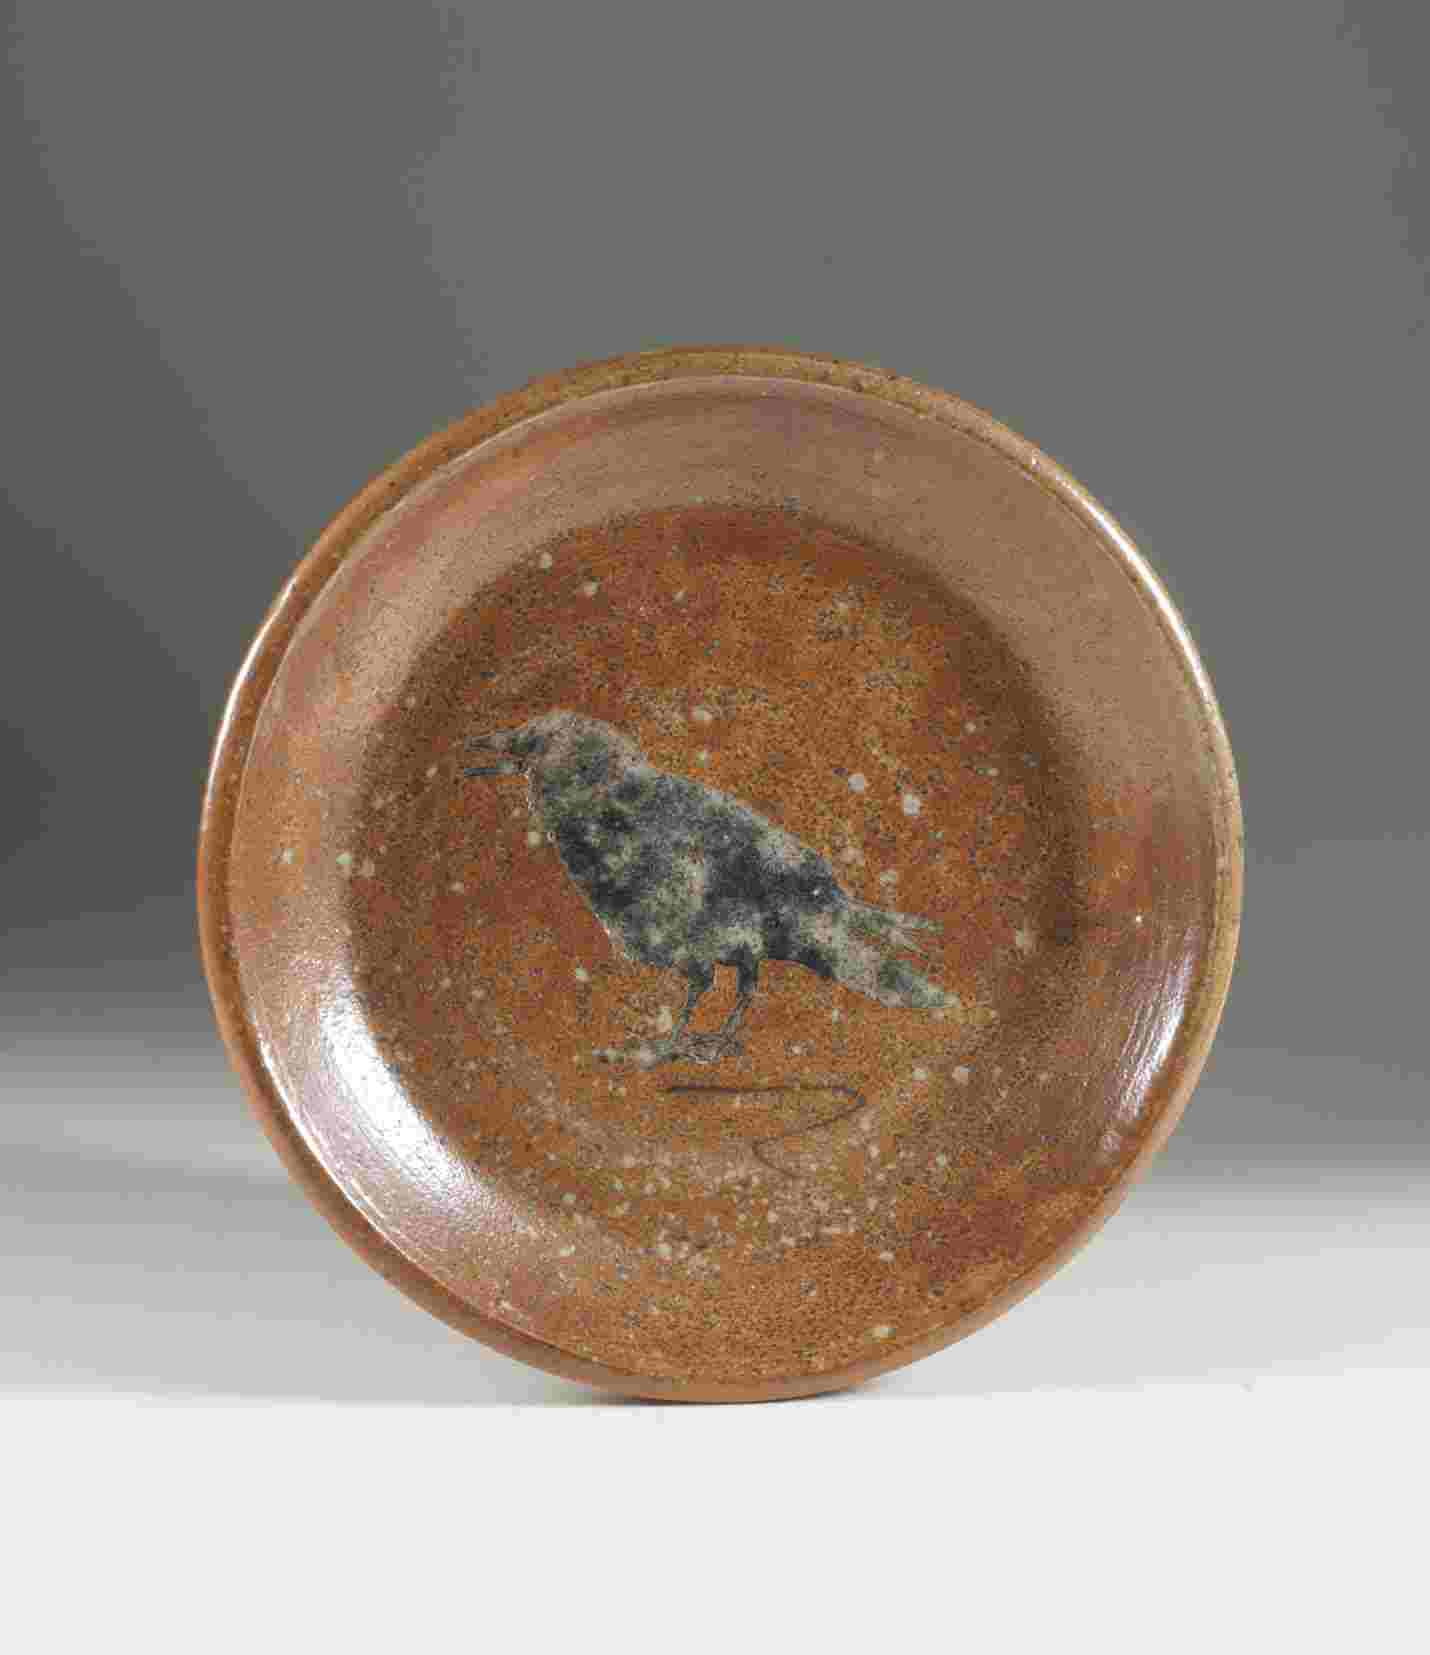 Crow plate, approximately 21 cm in diameter, 2012. Wheel thrown stoneware with stenciled image, wood/soda fired to cone 9-10. Photograph: Barbara Tipton